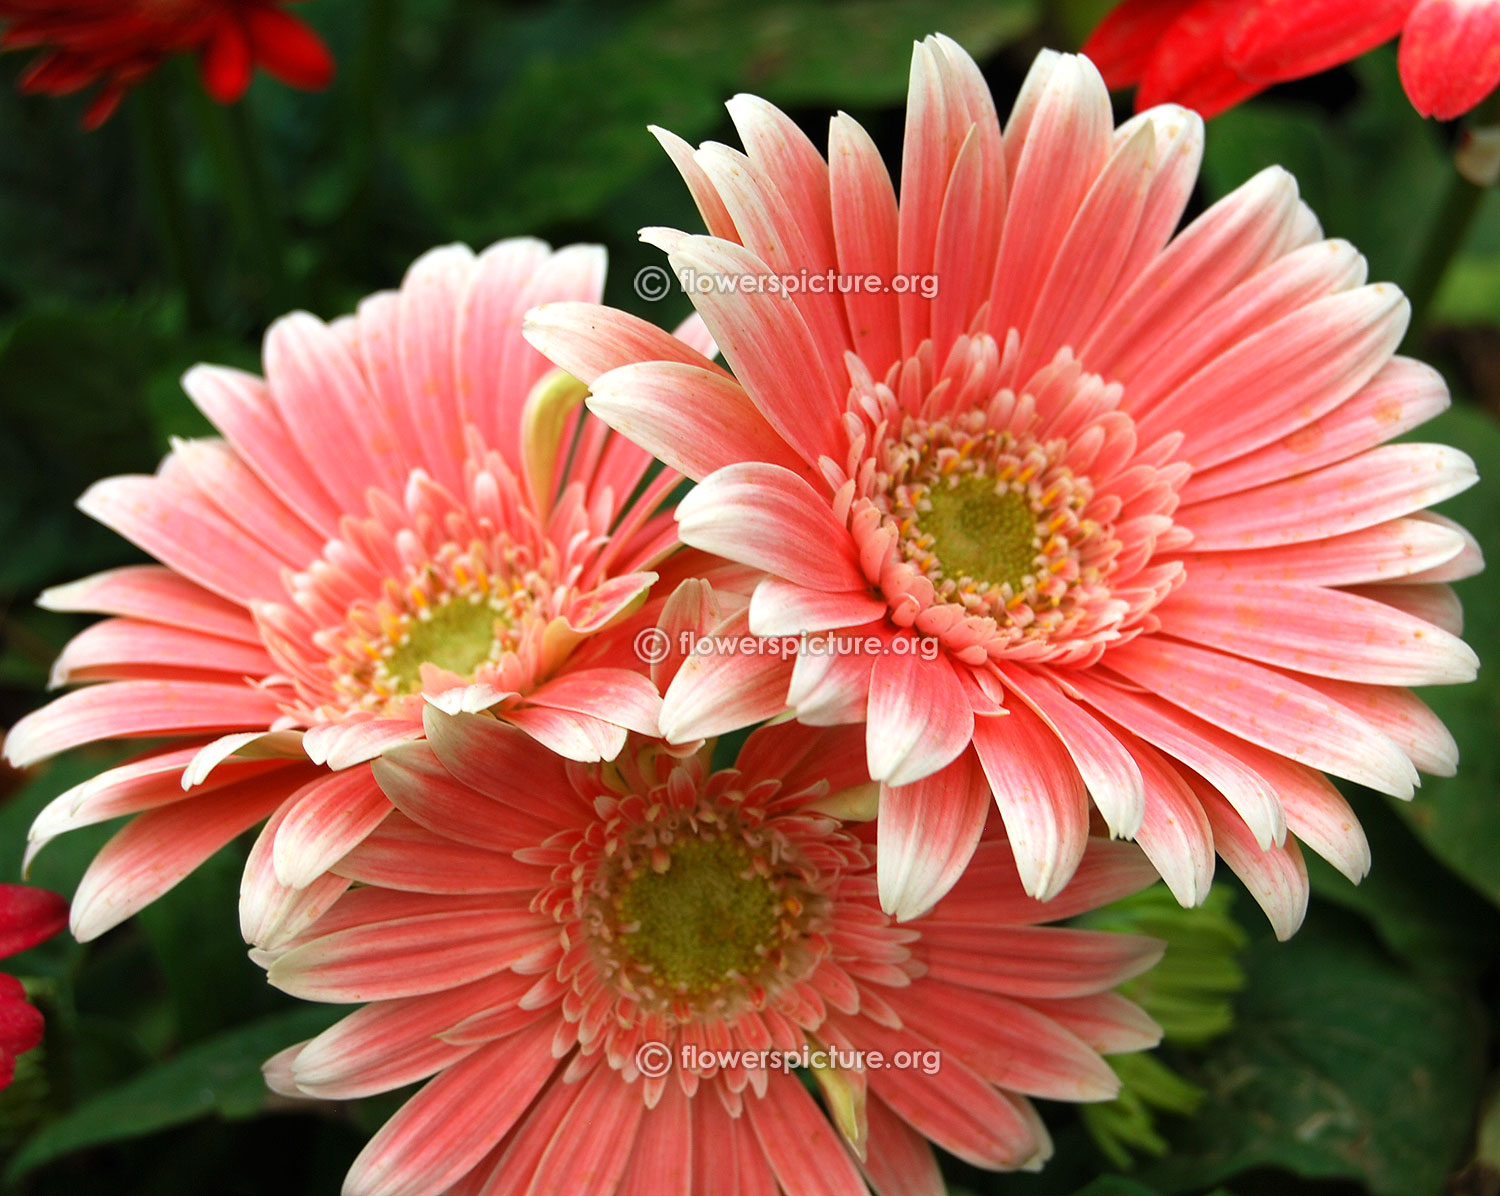 Gerbera daisy varieties salmon pink gerbera daisy lalbagh krumbiegel remembered flower show jan 2016 izmirmasajfo